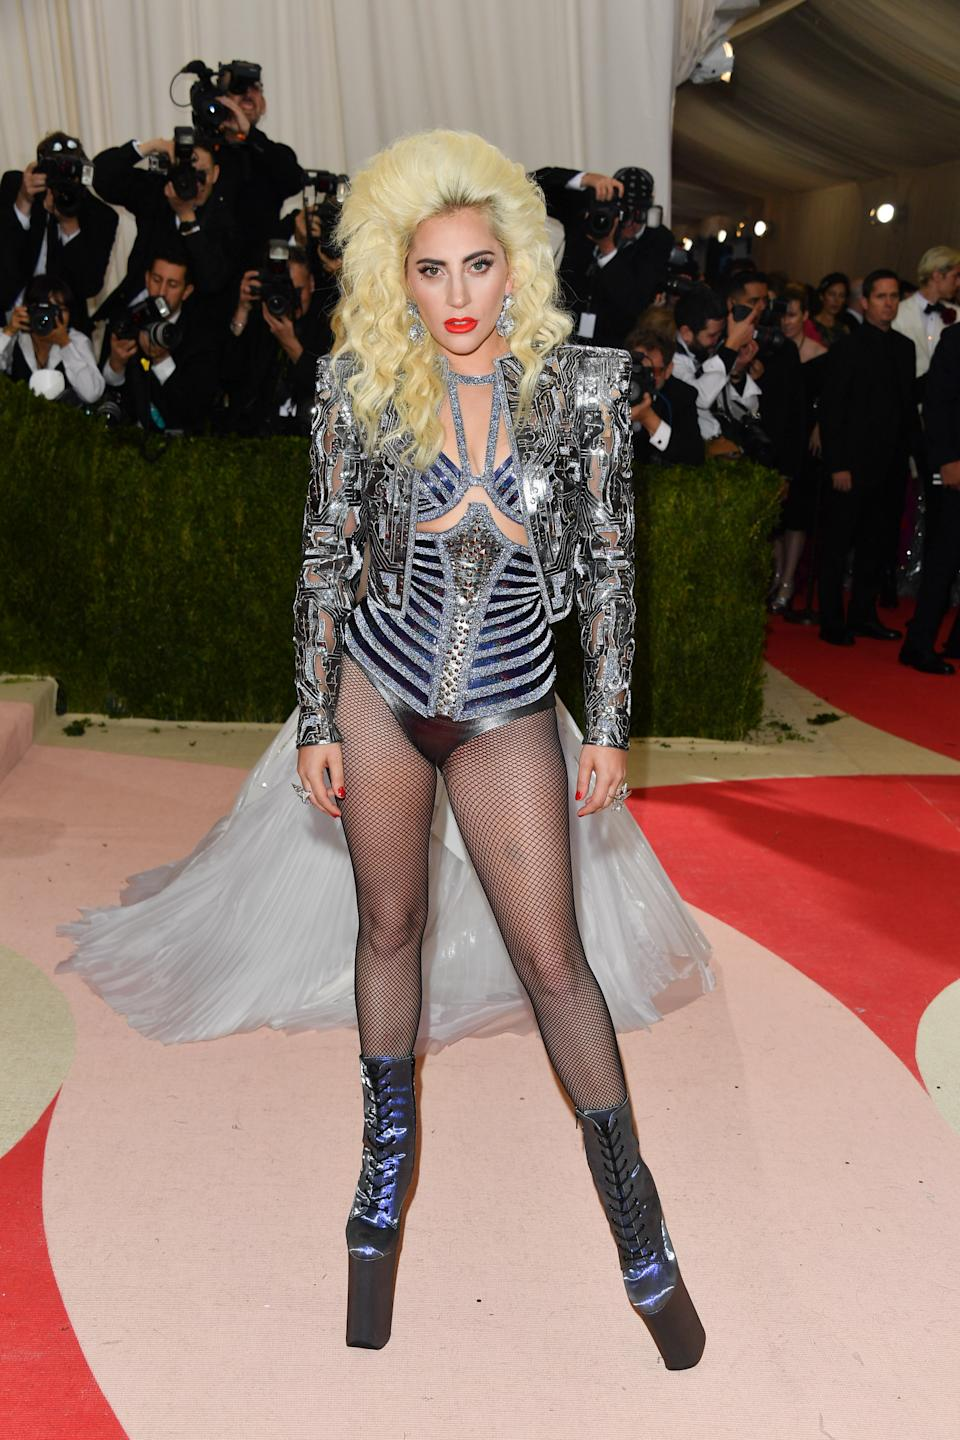 'Manus x Machina: Fashion in an Age of Technology' fue la temática de la gala de 2016, donde Lady Gaga apareció con un <em>outfit</em> tan futurista como rompedor de Versace. (Foto: George Pimentel / Getty Images)